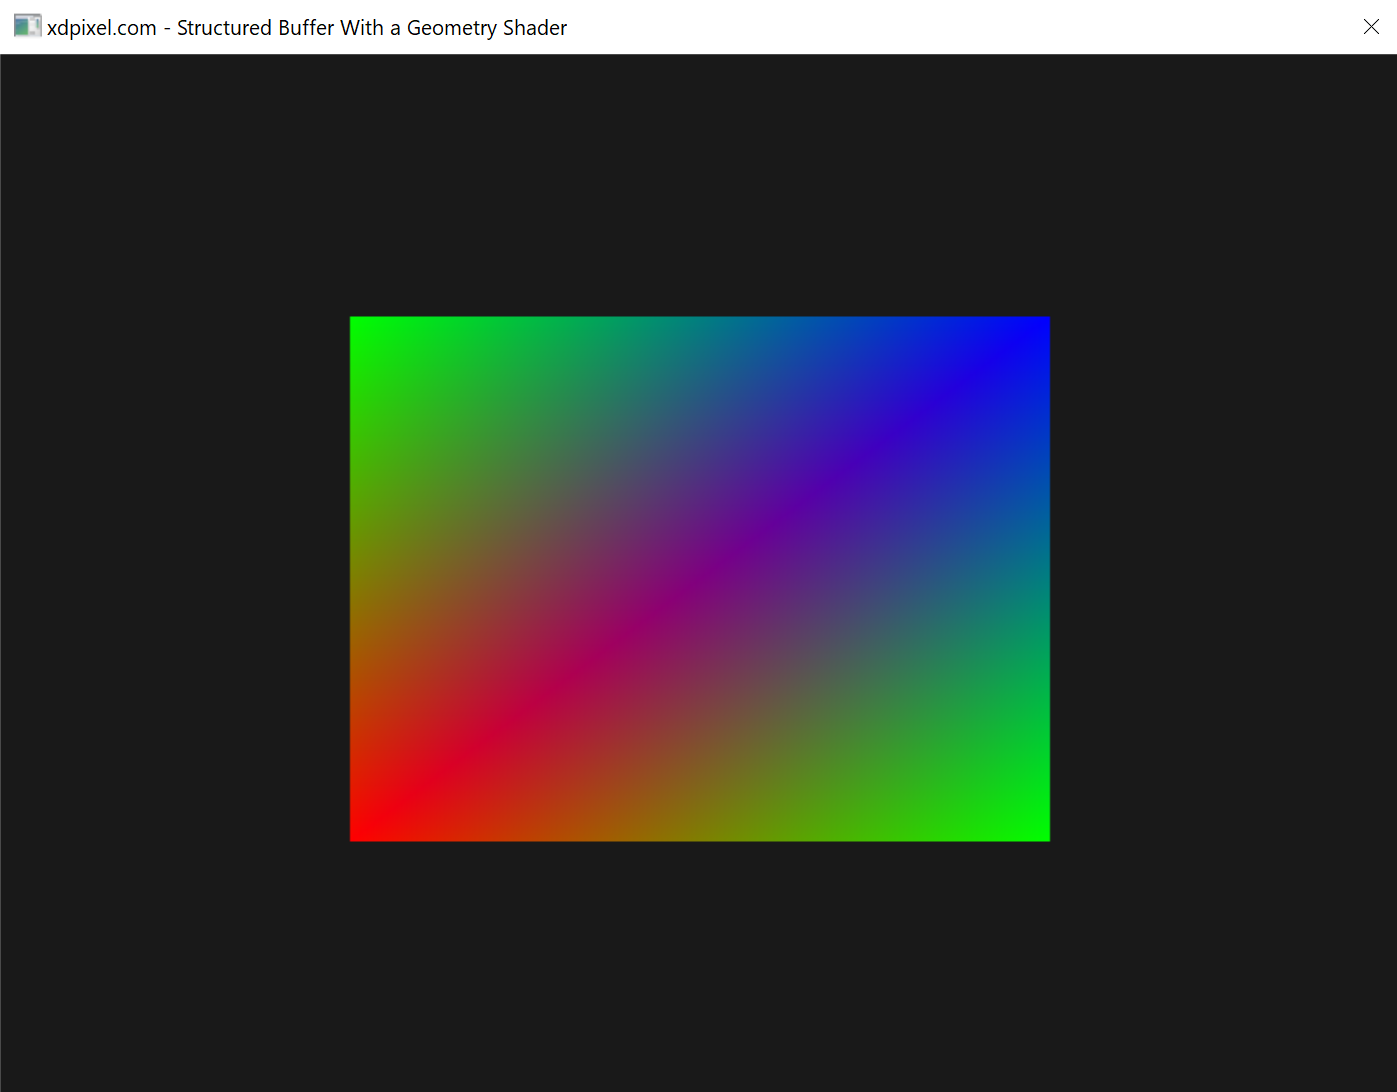 DirectX11 Geometry Shader with a Structured Buffer